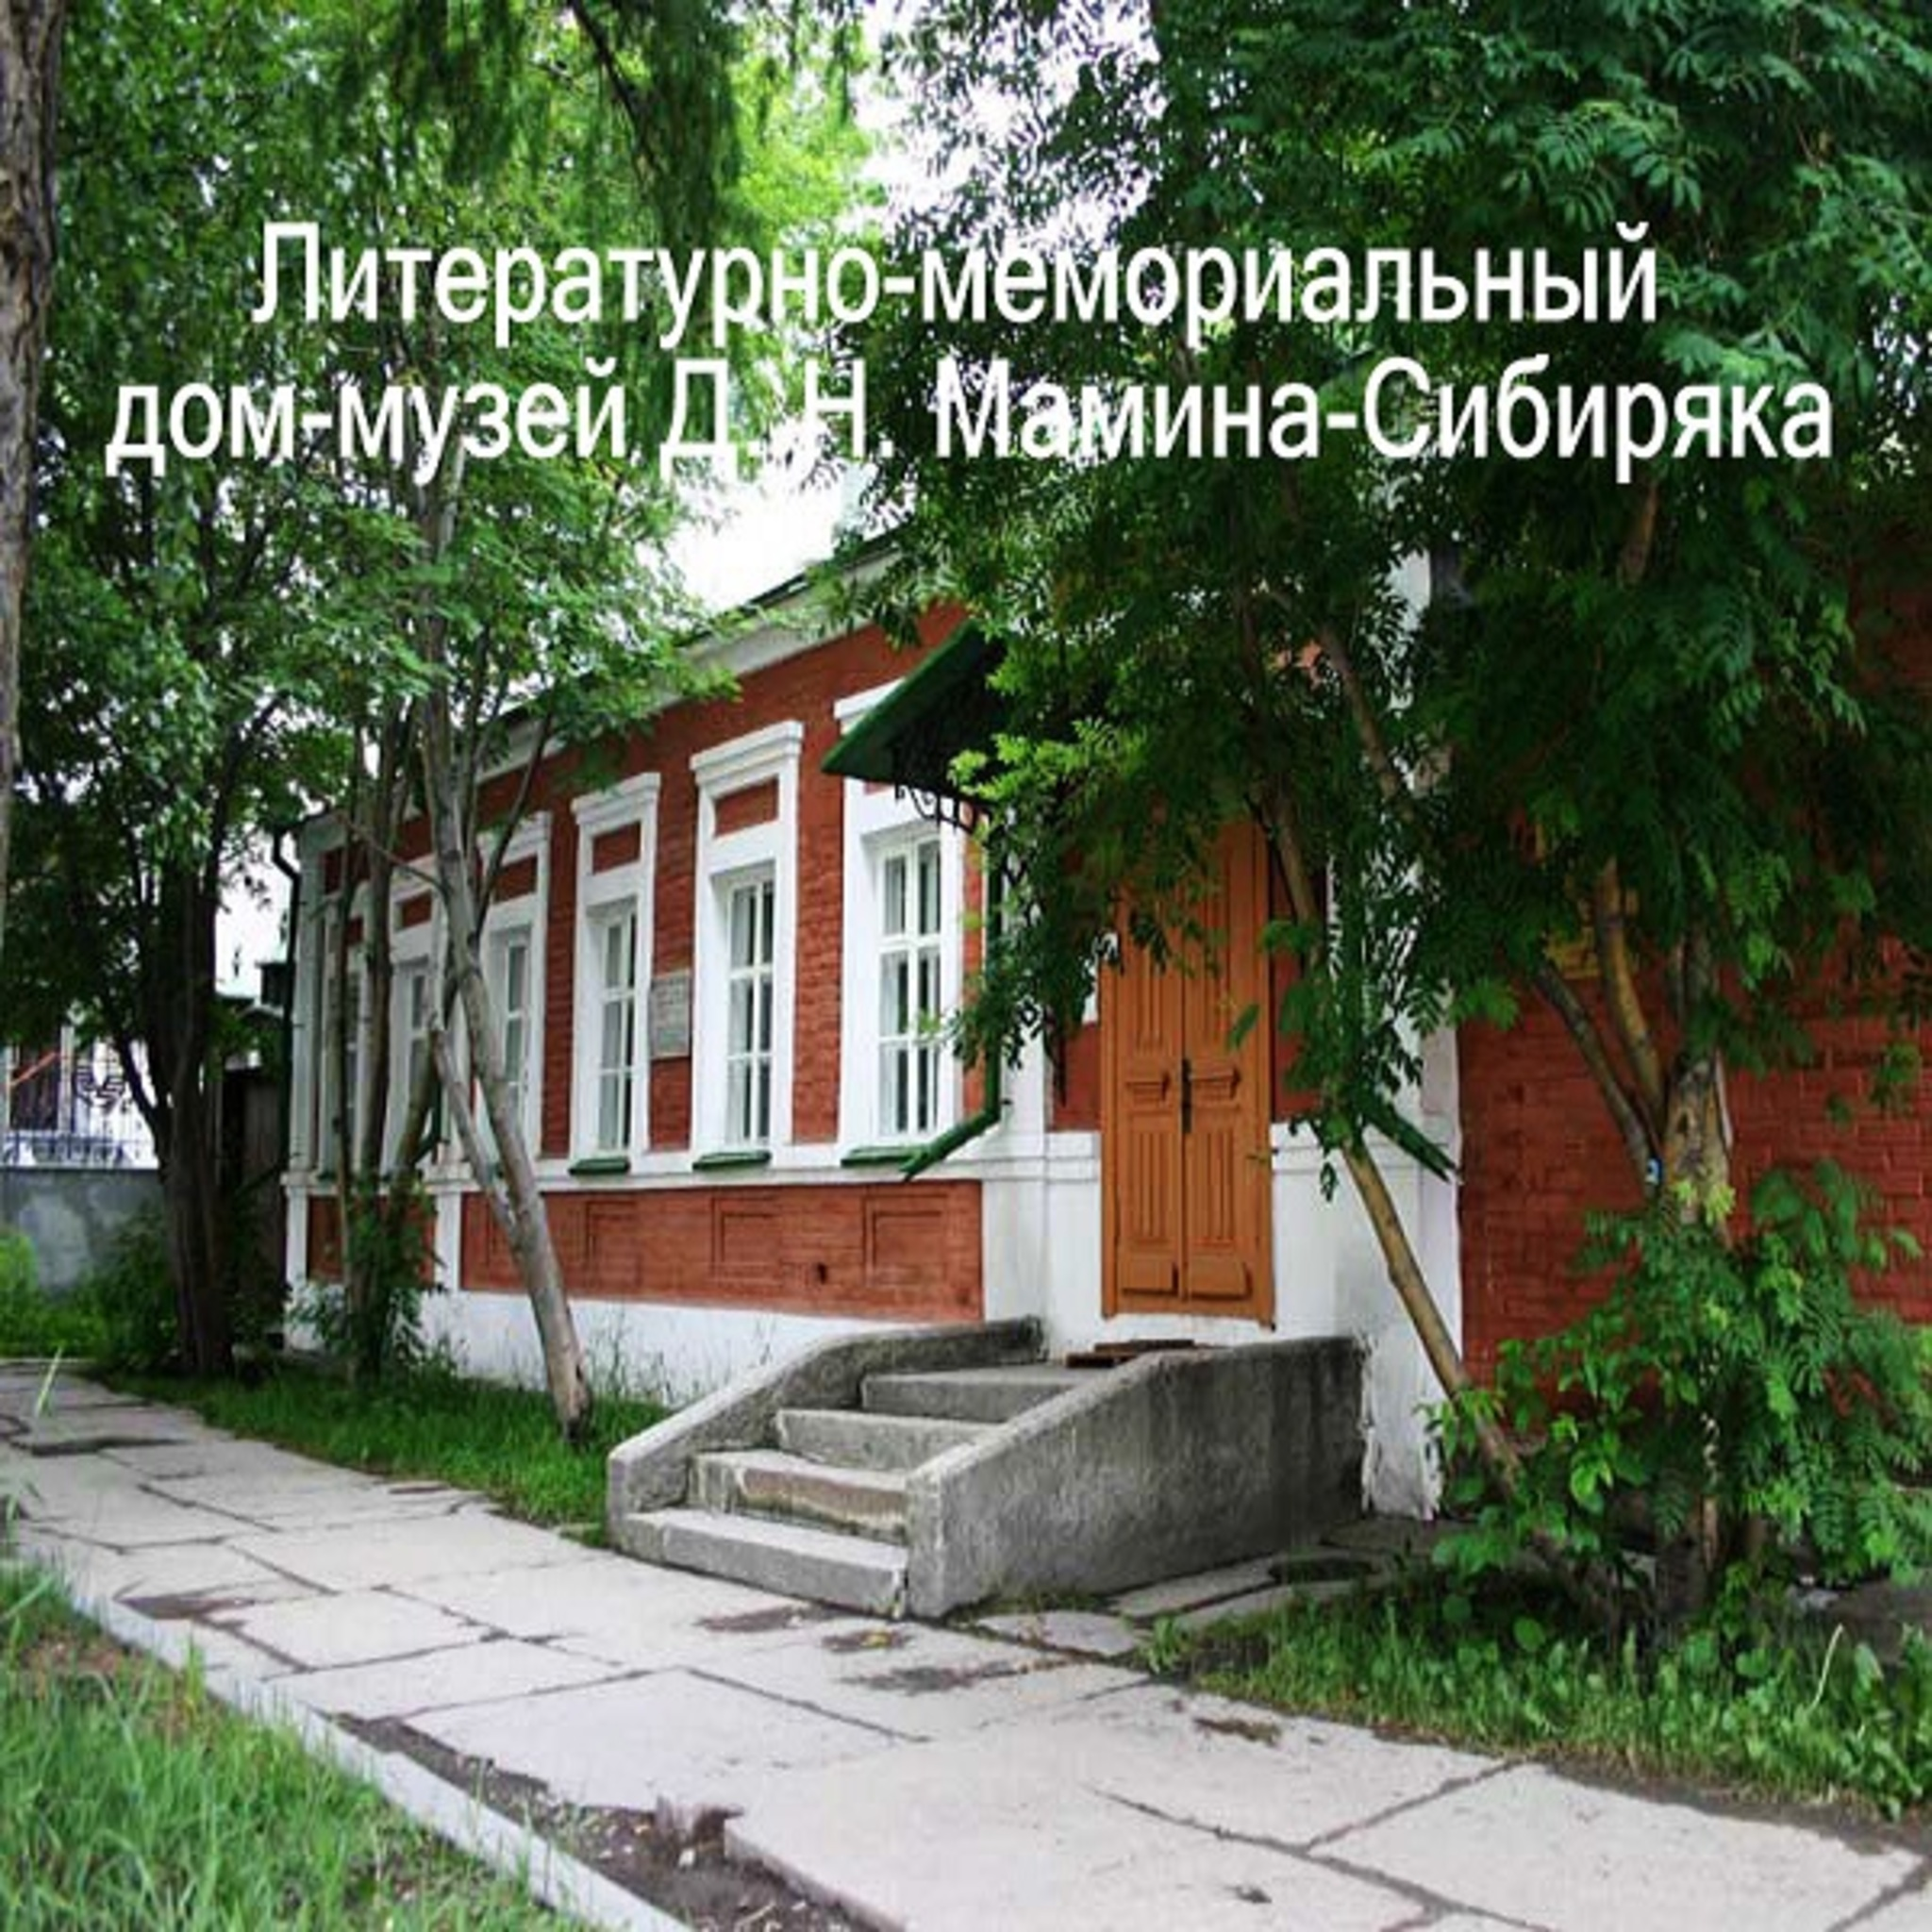 The literary-memorial museum D.N. Mamin-Sibiryak